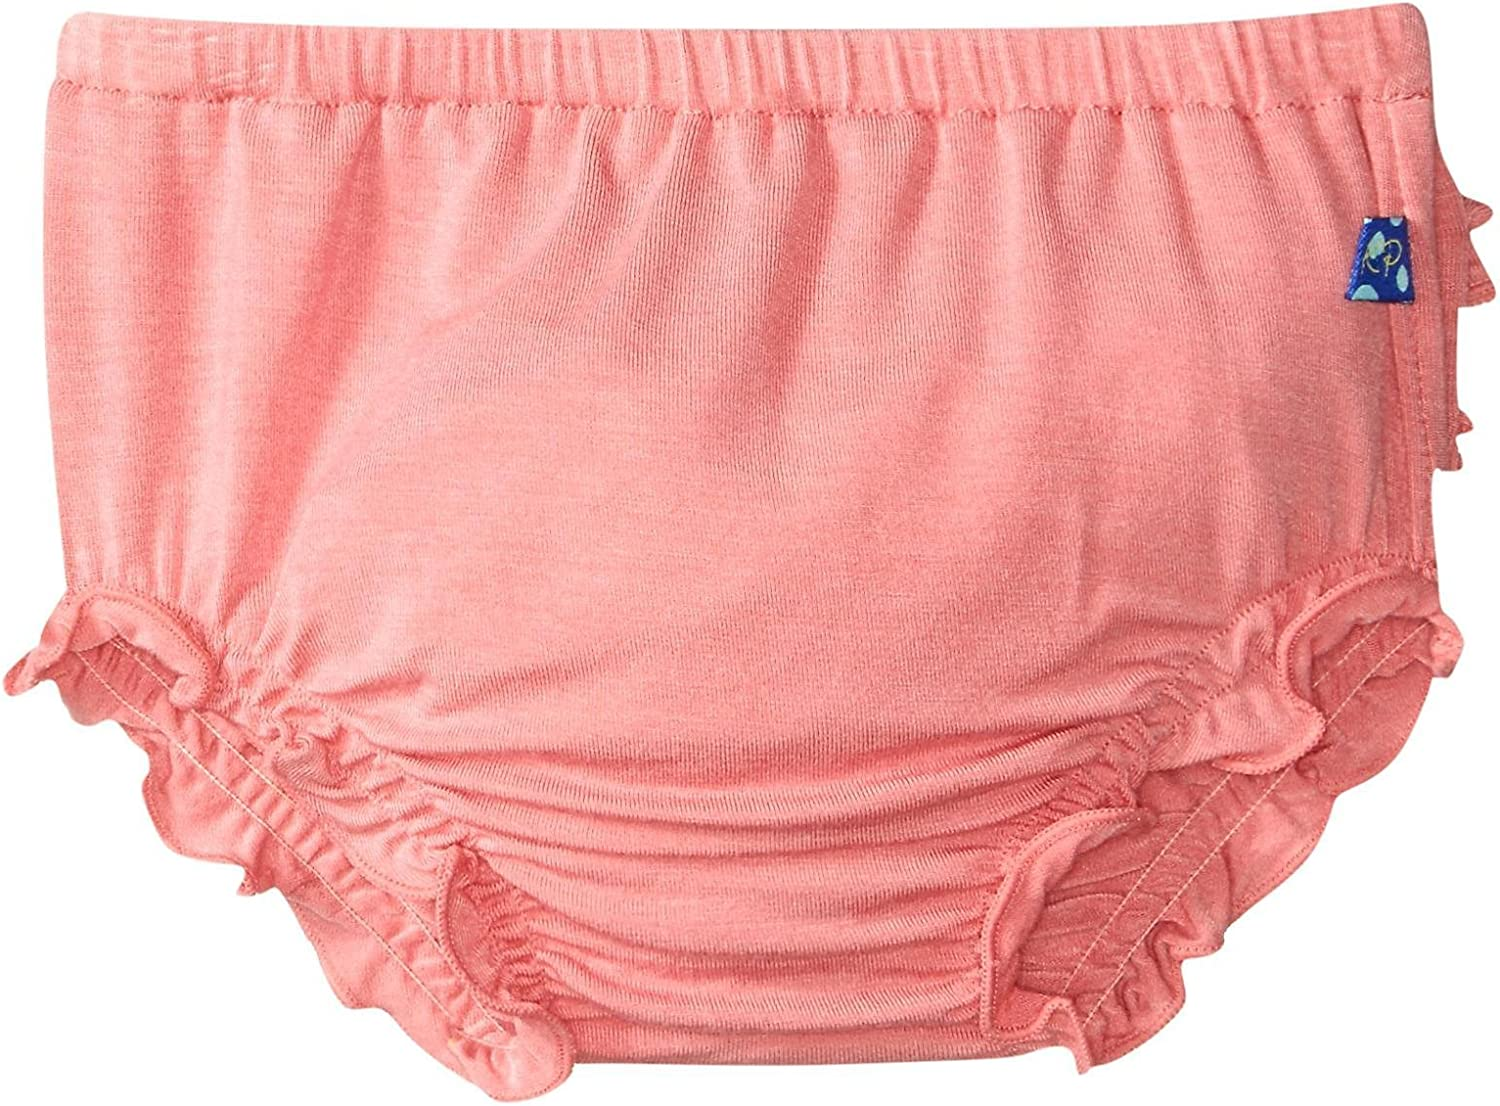 Kic Kee Pants Bombing free shipping Max 49% OFF Baby Girls' Bloomer Prd-kpb708-dr Solid